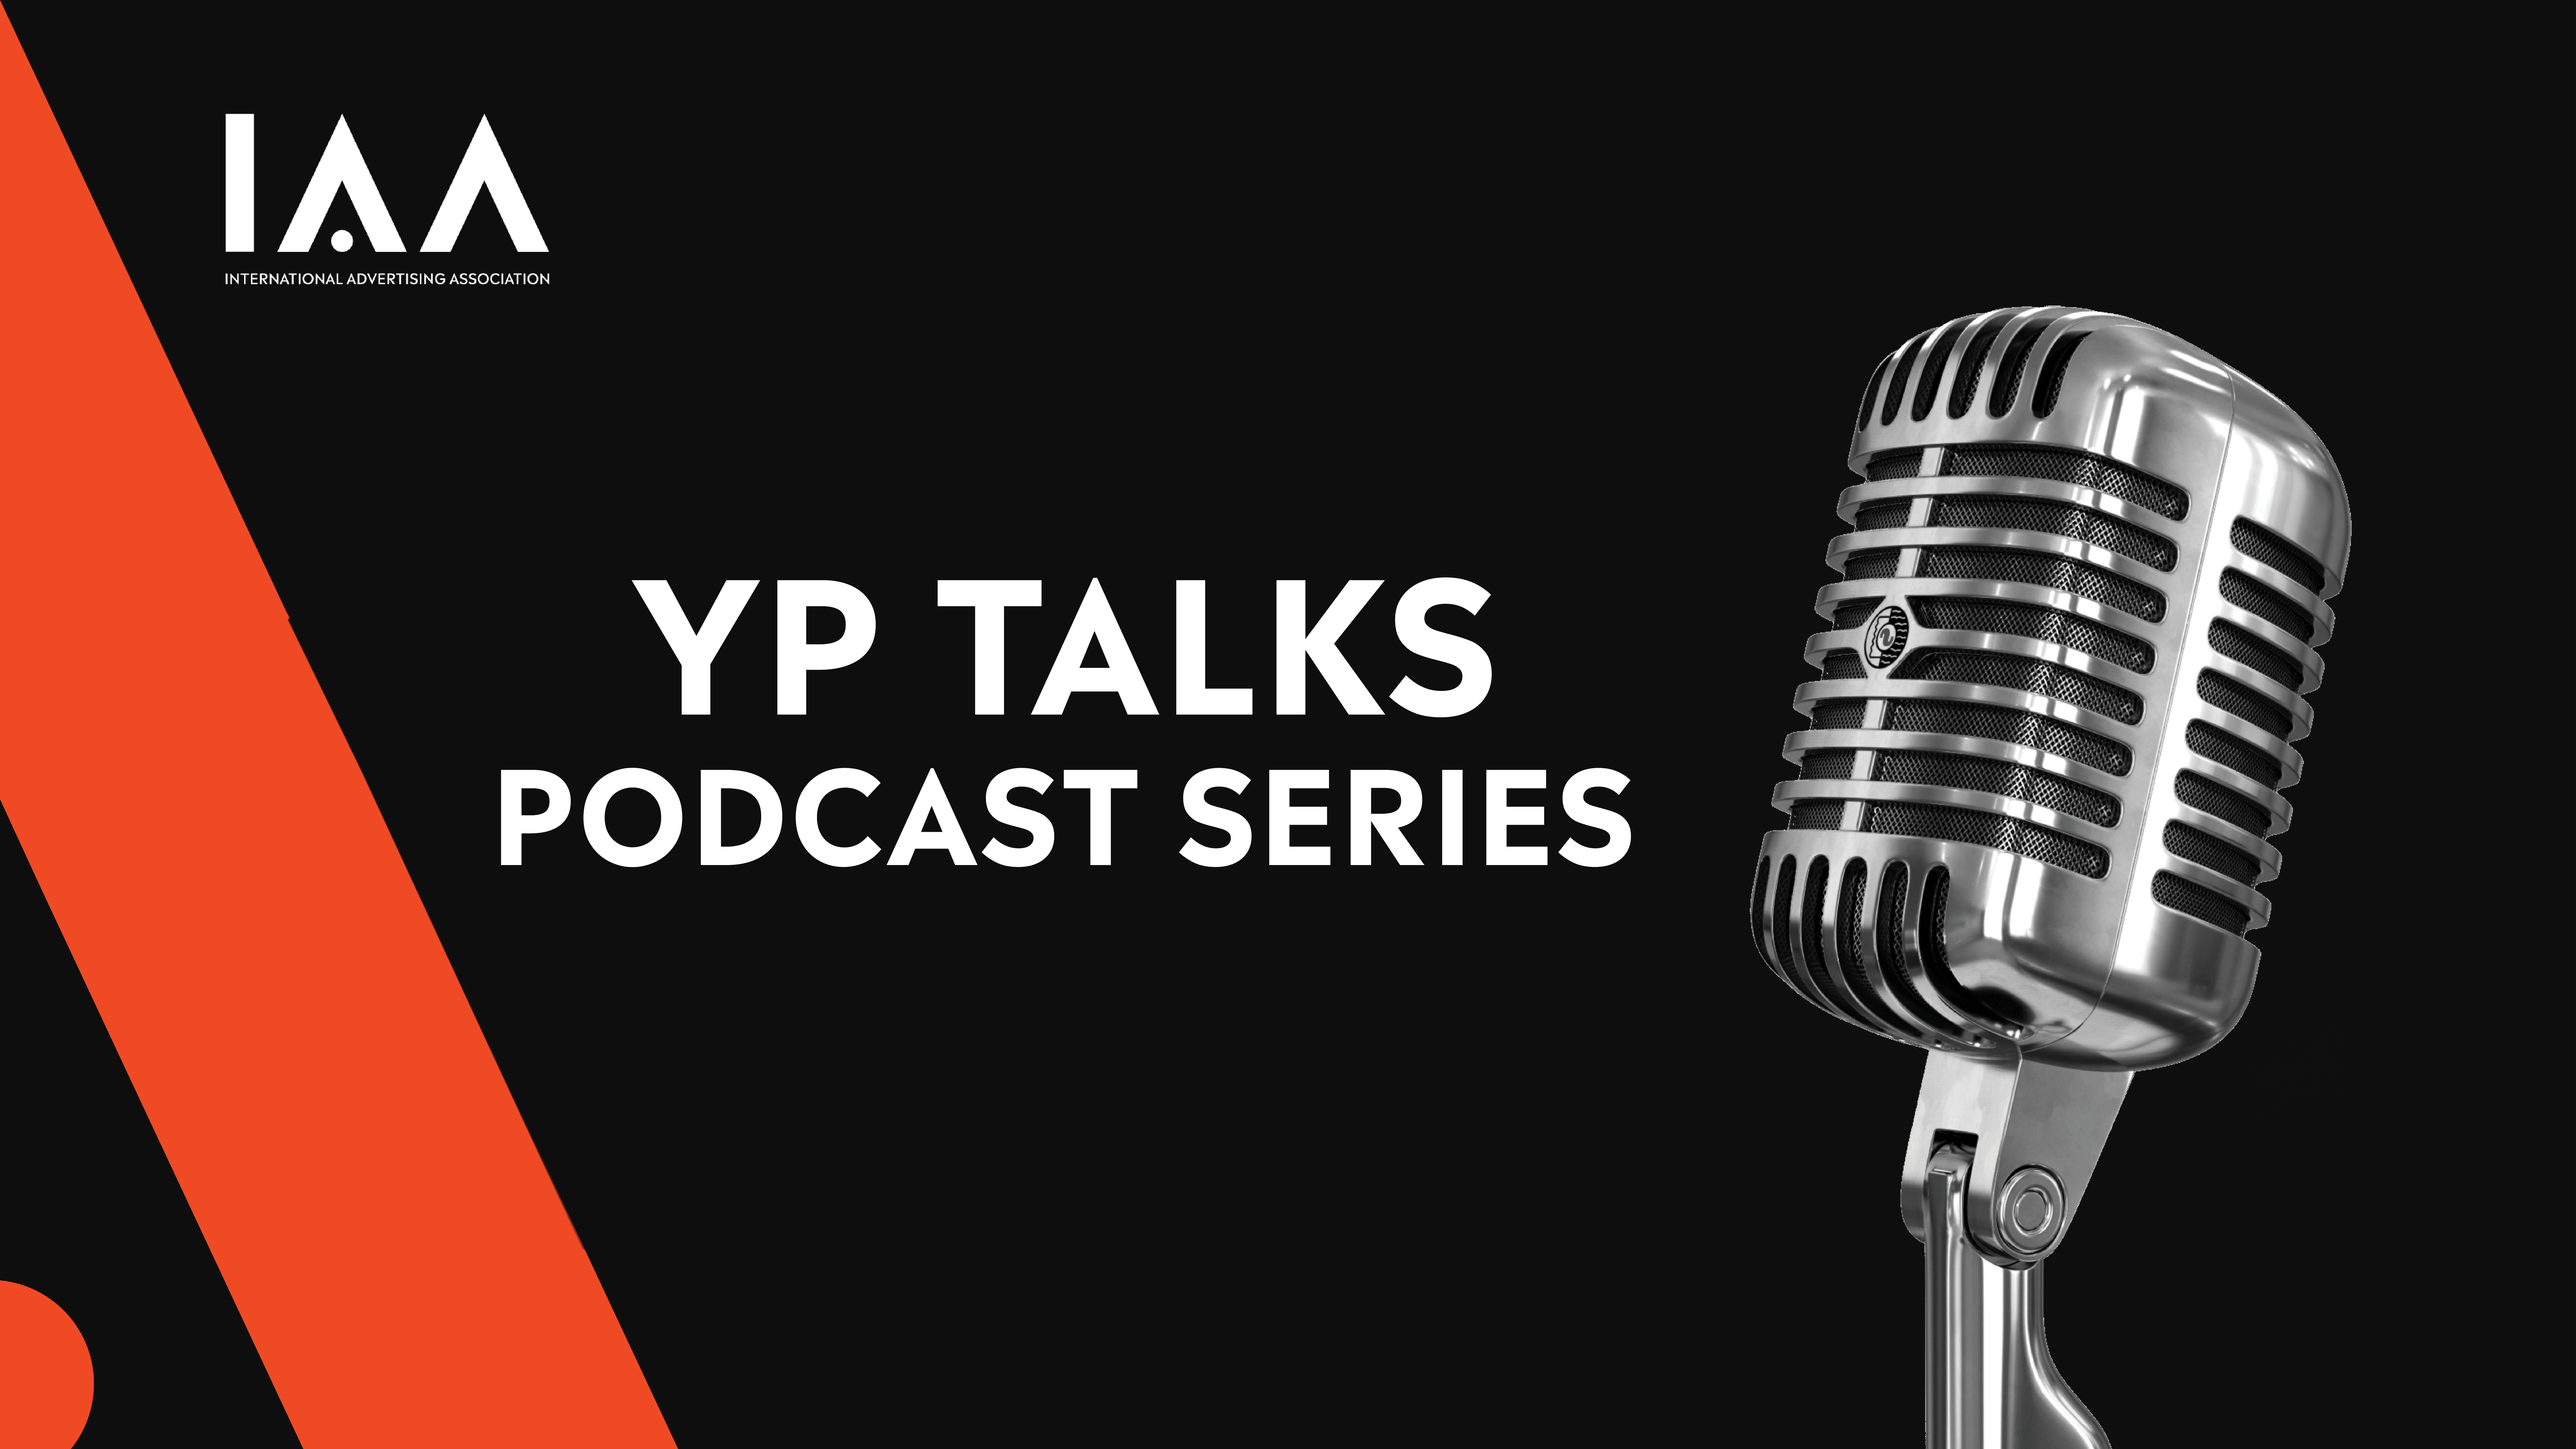 IAA YP Talks | OTT Platforms and Content Consumption